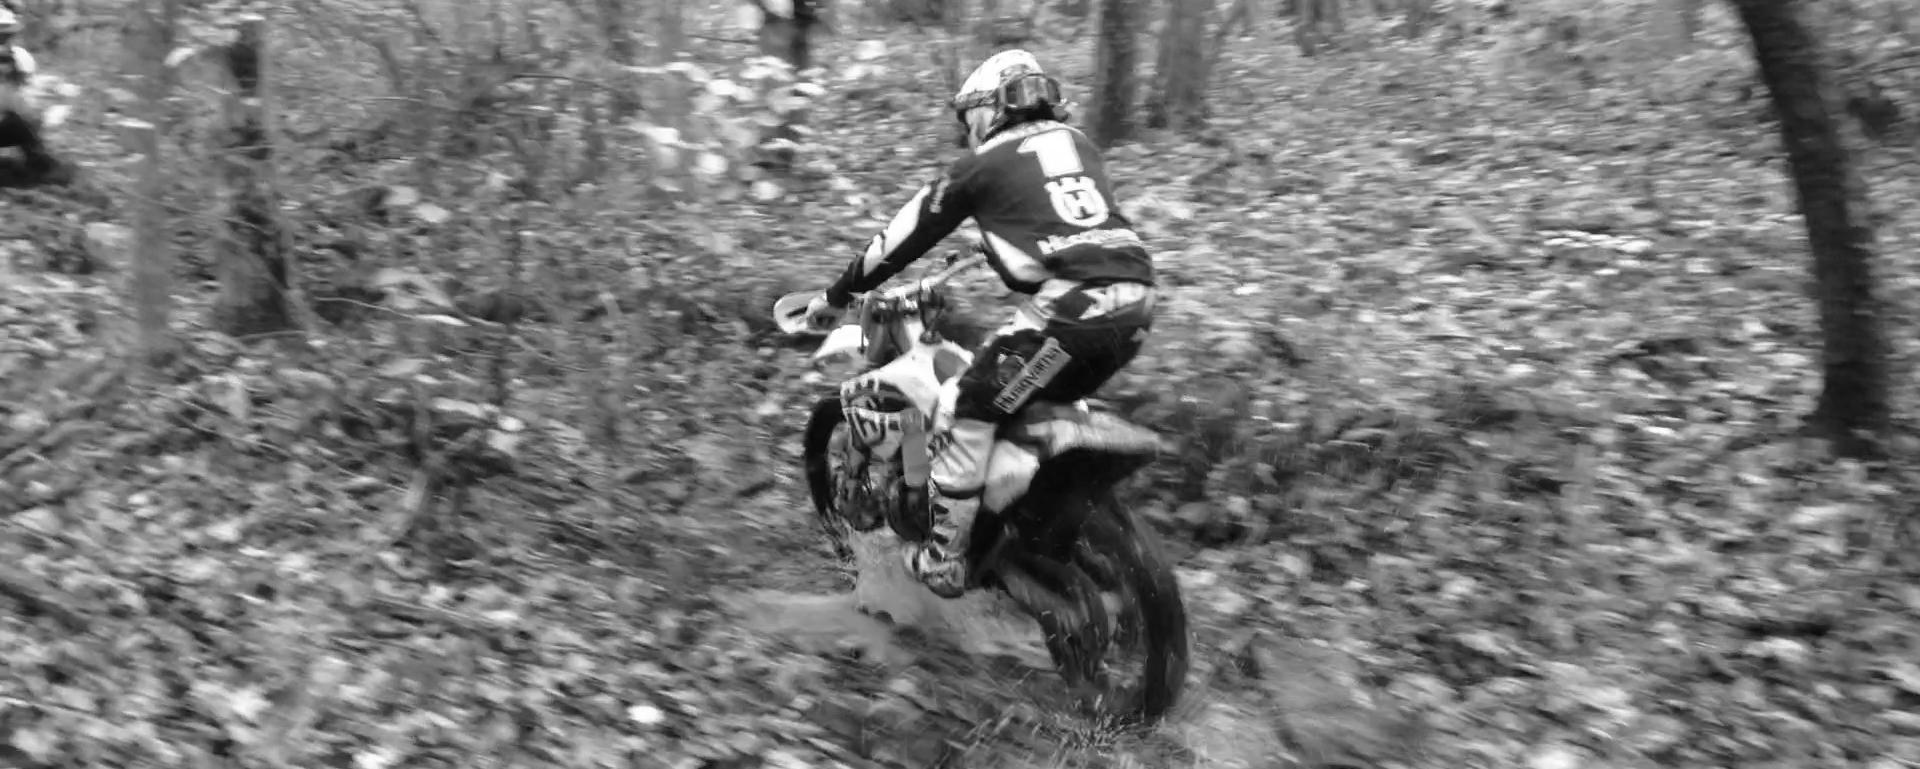 Learn extreme enduro techniques from Graham Jarvis